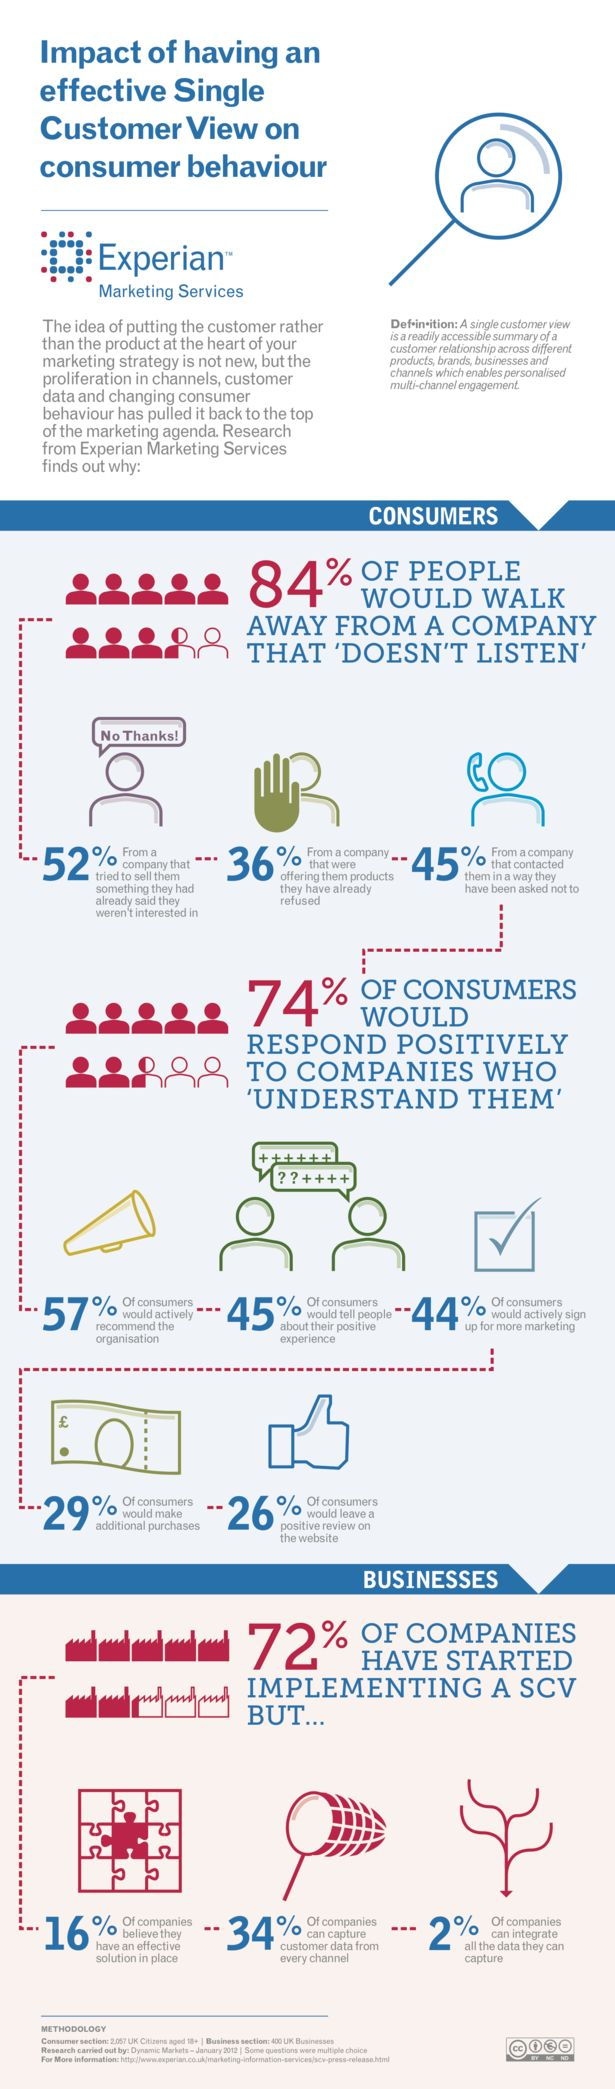 This infographic provides a good look at why treating customers as individuals is so very important.